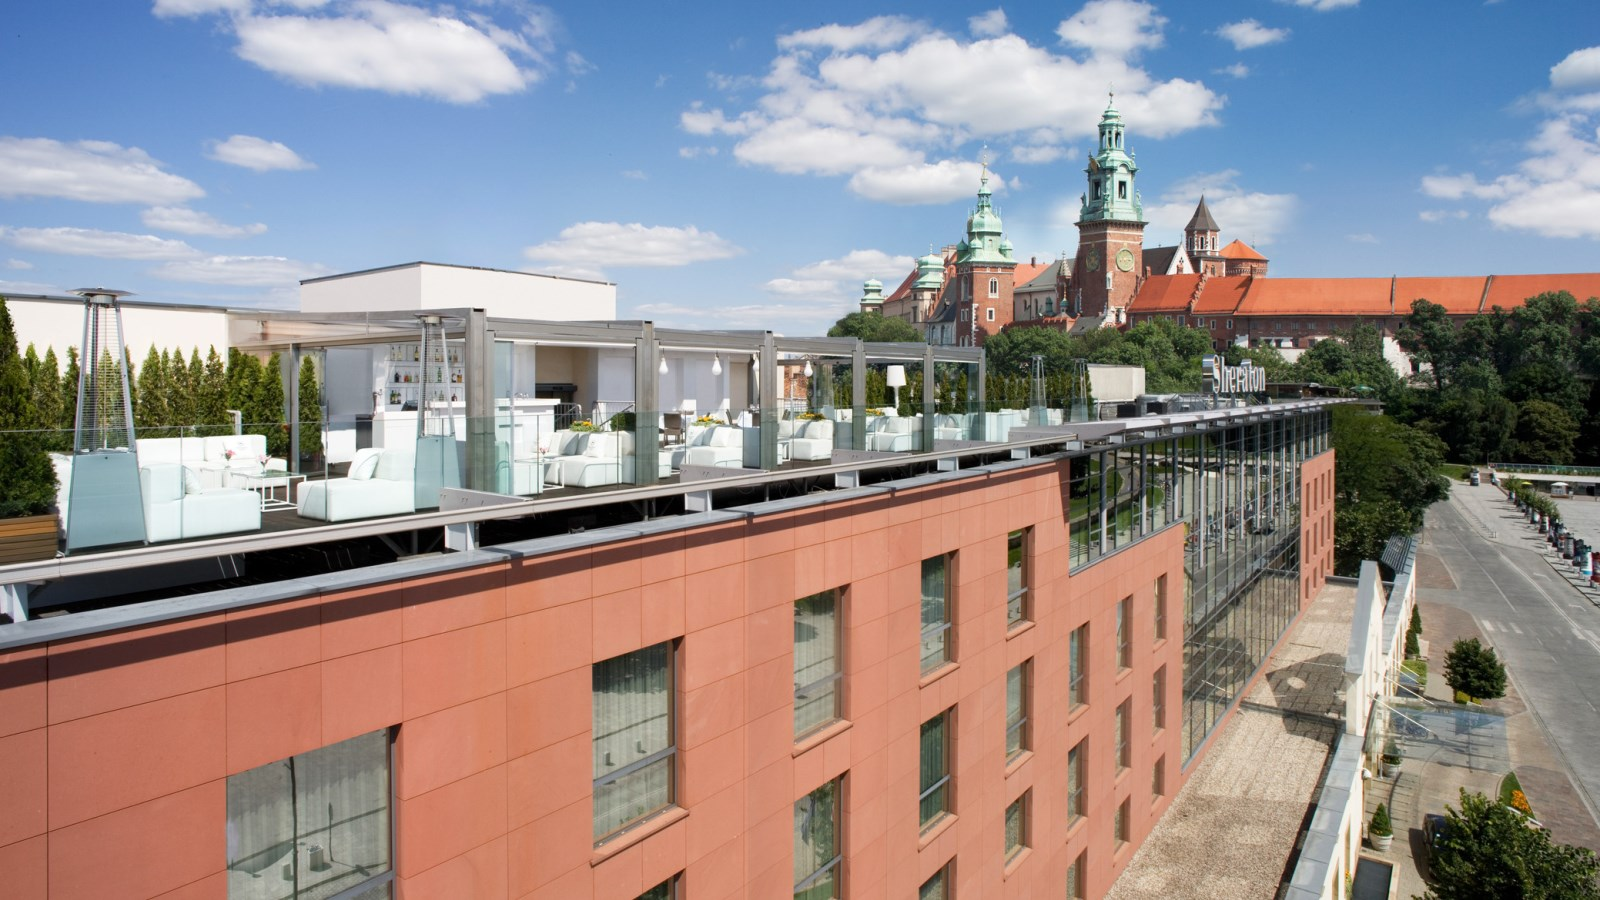 Luxury hotels group blog for Top design hotels poland